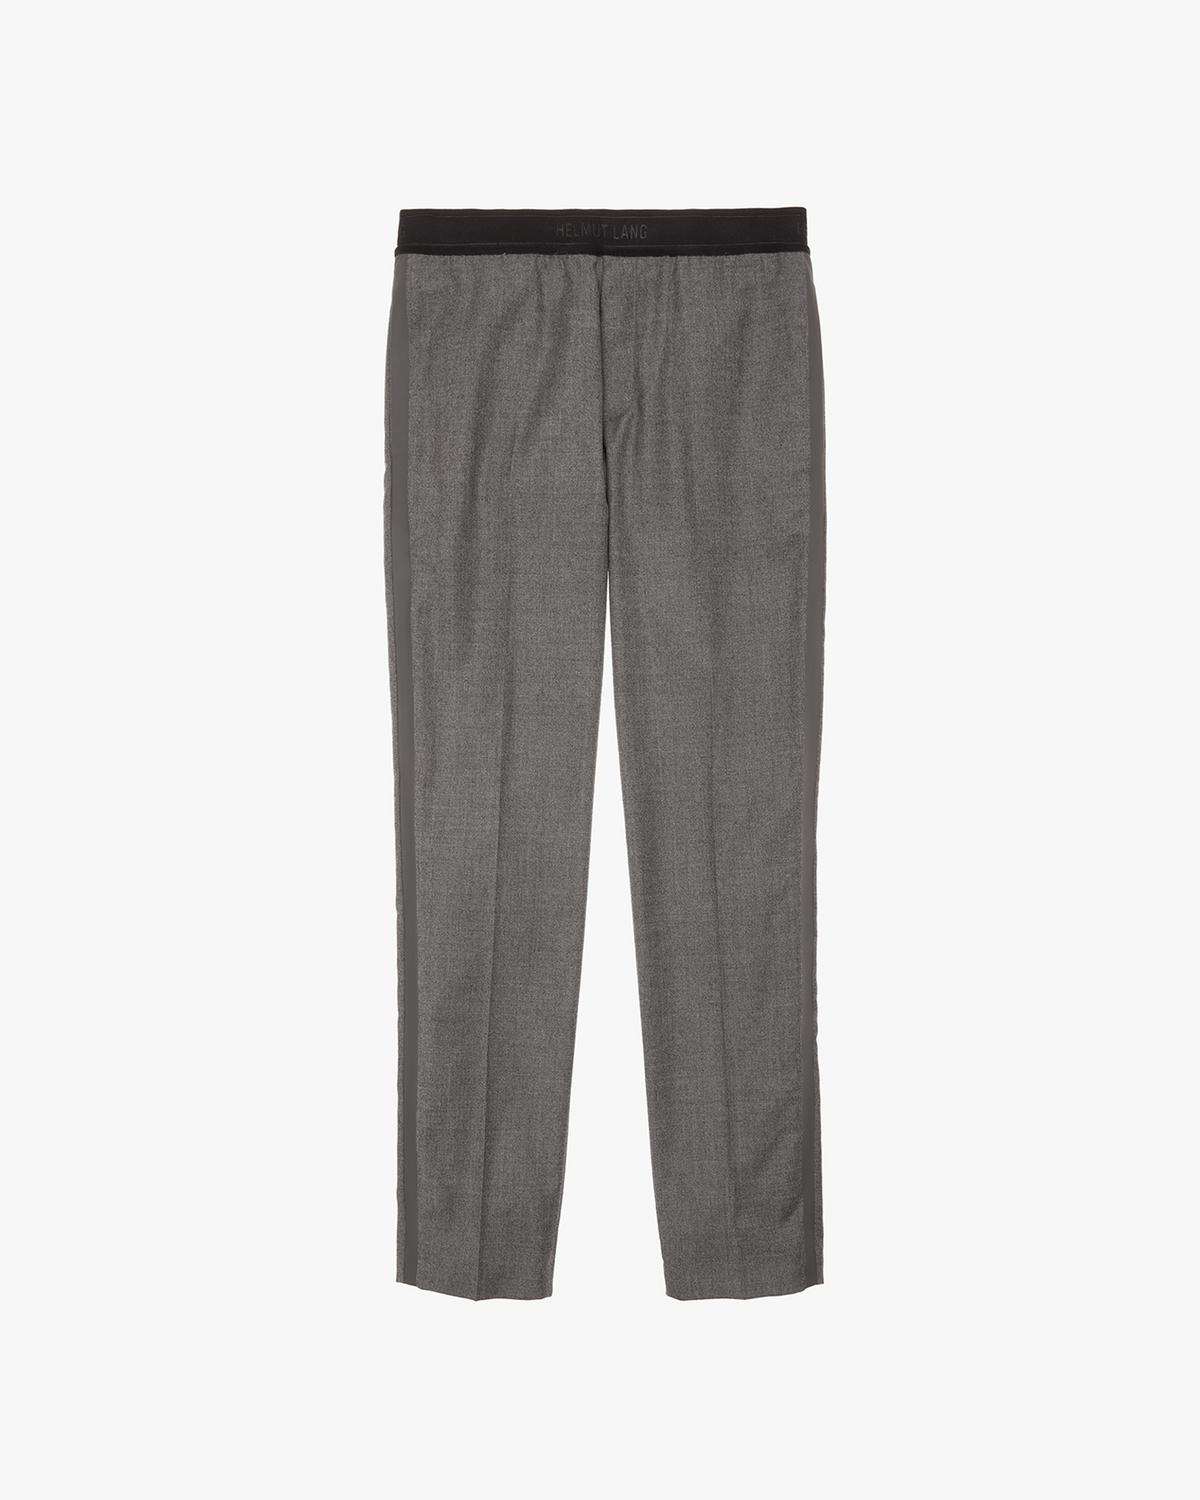 Band Pull On Pants